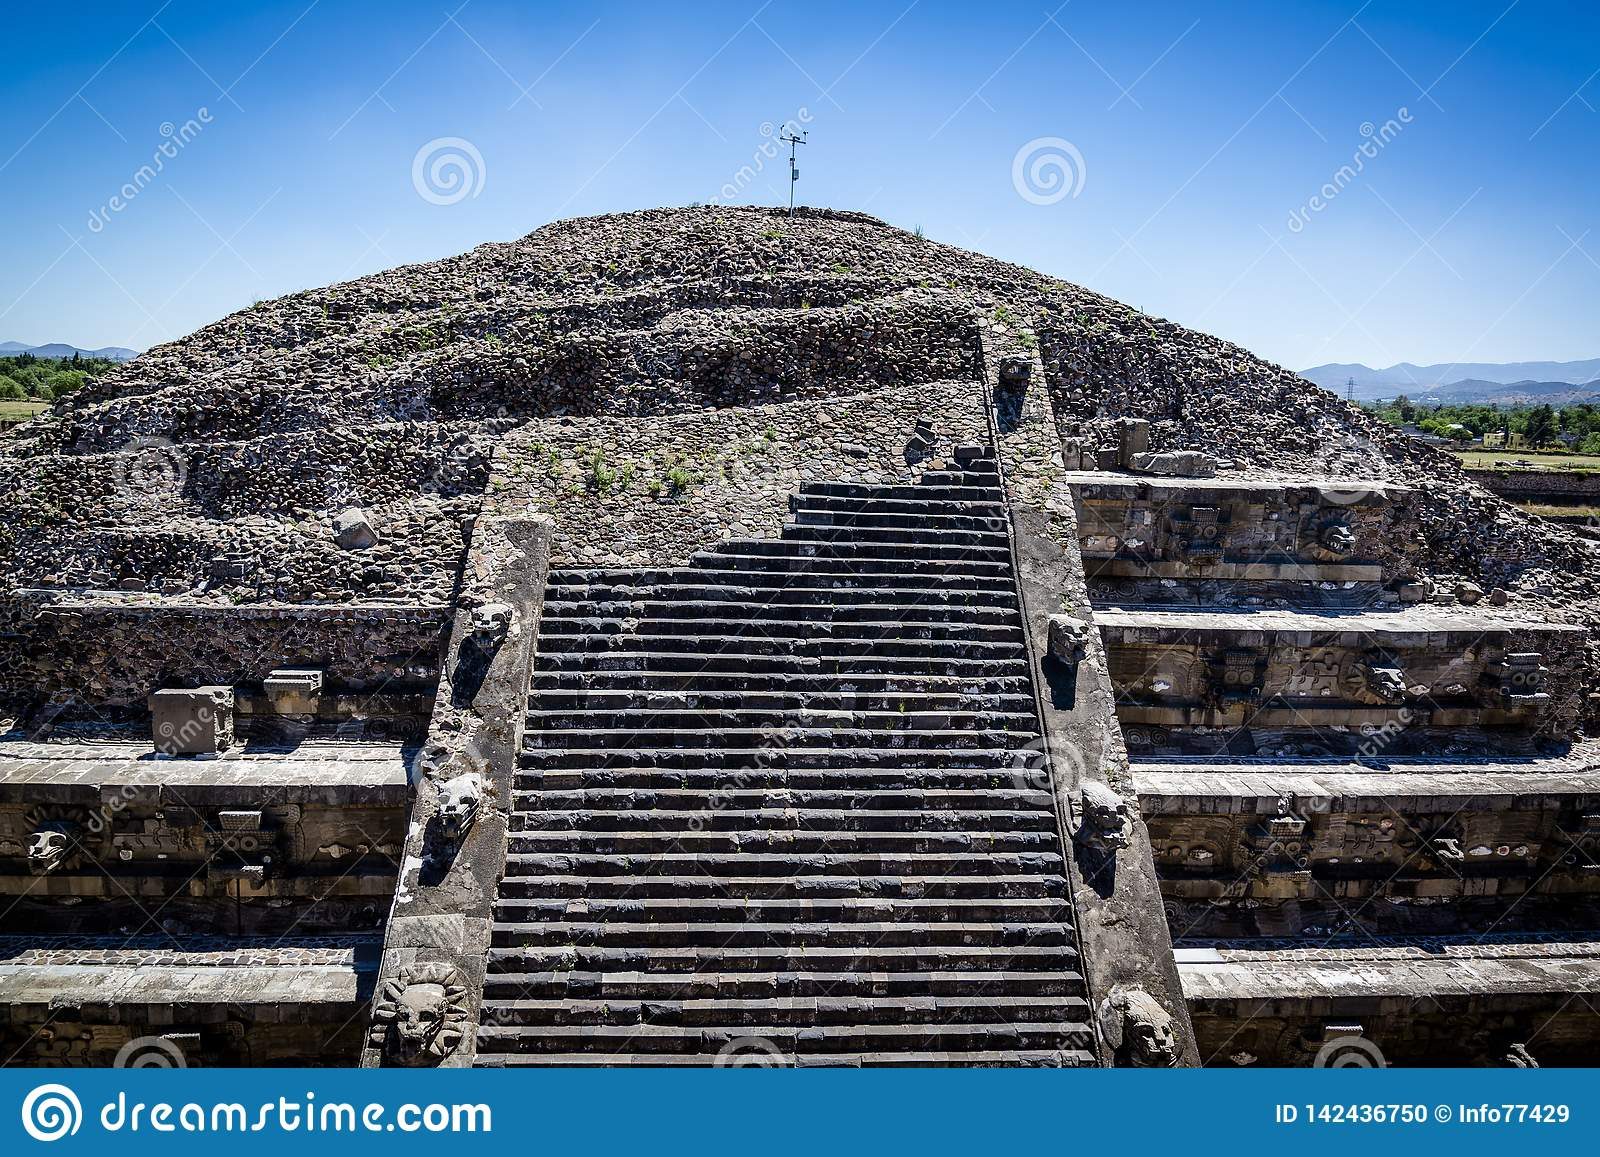 Temple of the Feathered Serpent, Teotihuacan, Mexico